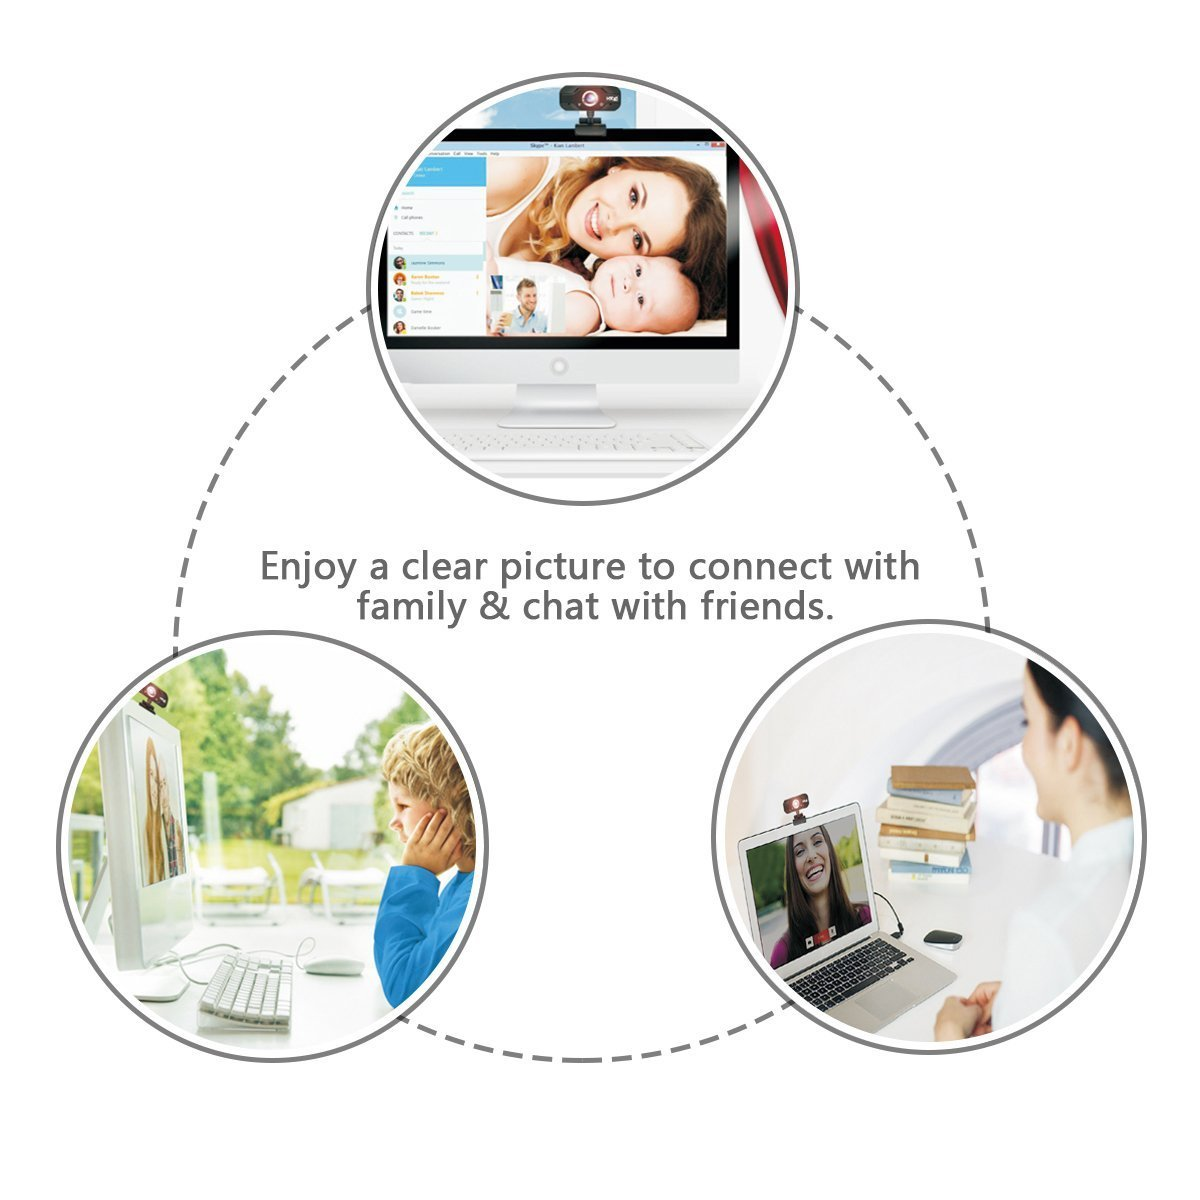 720P HD Webcam, EIVOTOR USB Mini Computer Camera with Built-in Microphone for Laptops and Desktop,Black by EIVOTOR (Image #6)